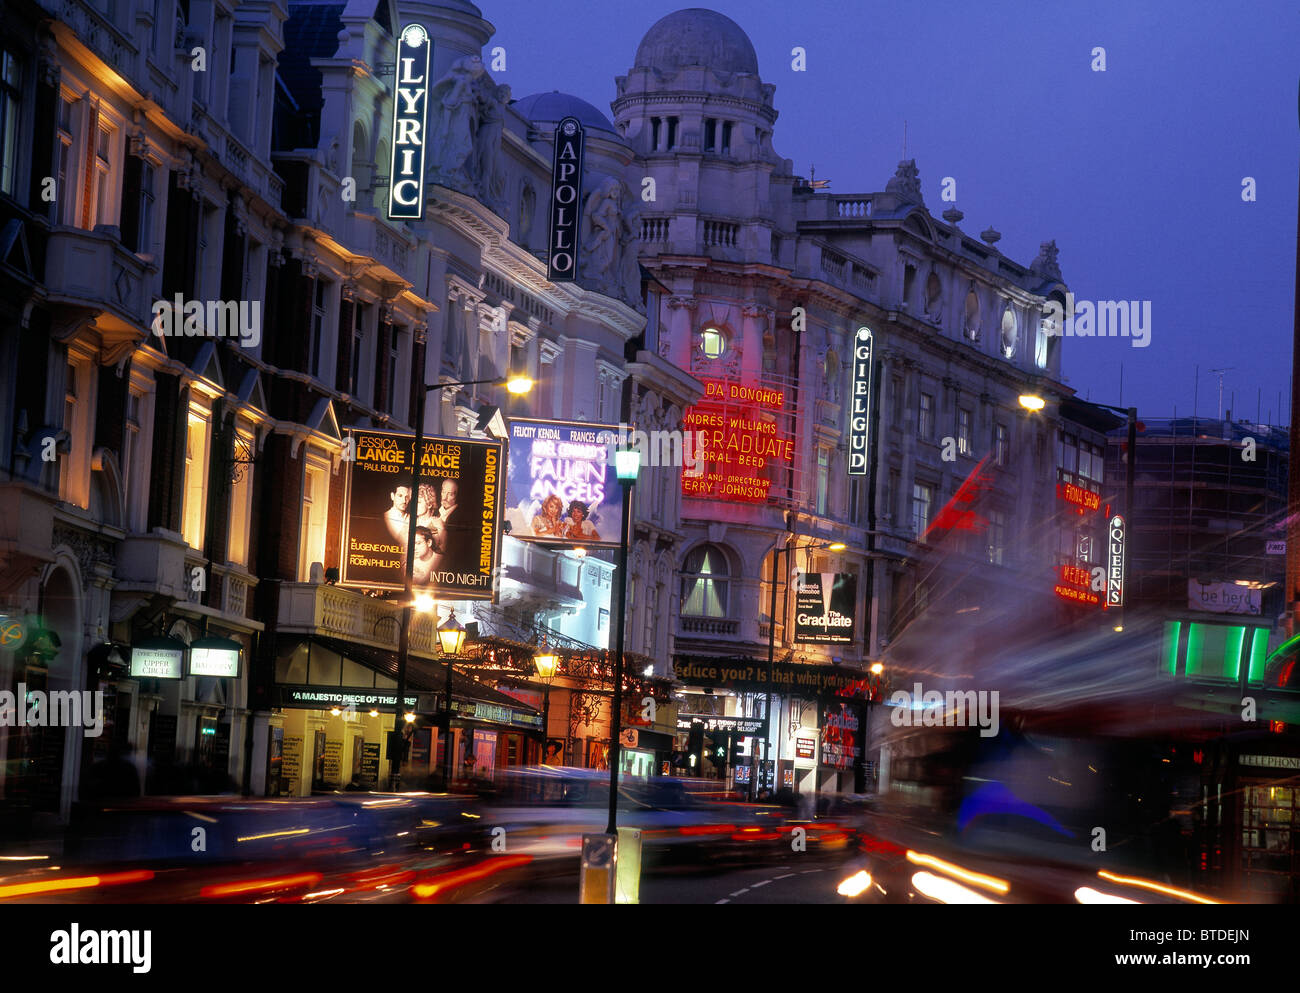 Shaftesbury Avenue, Theatreland - Stock Image